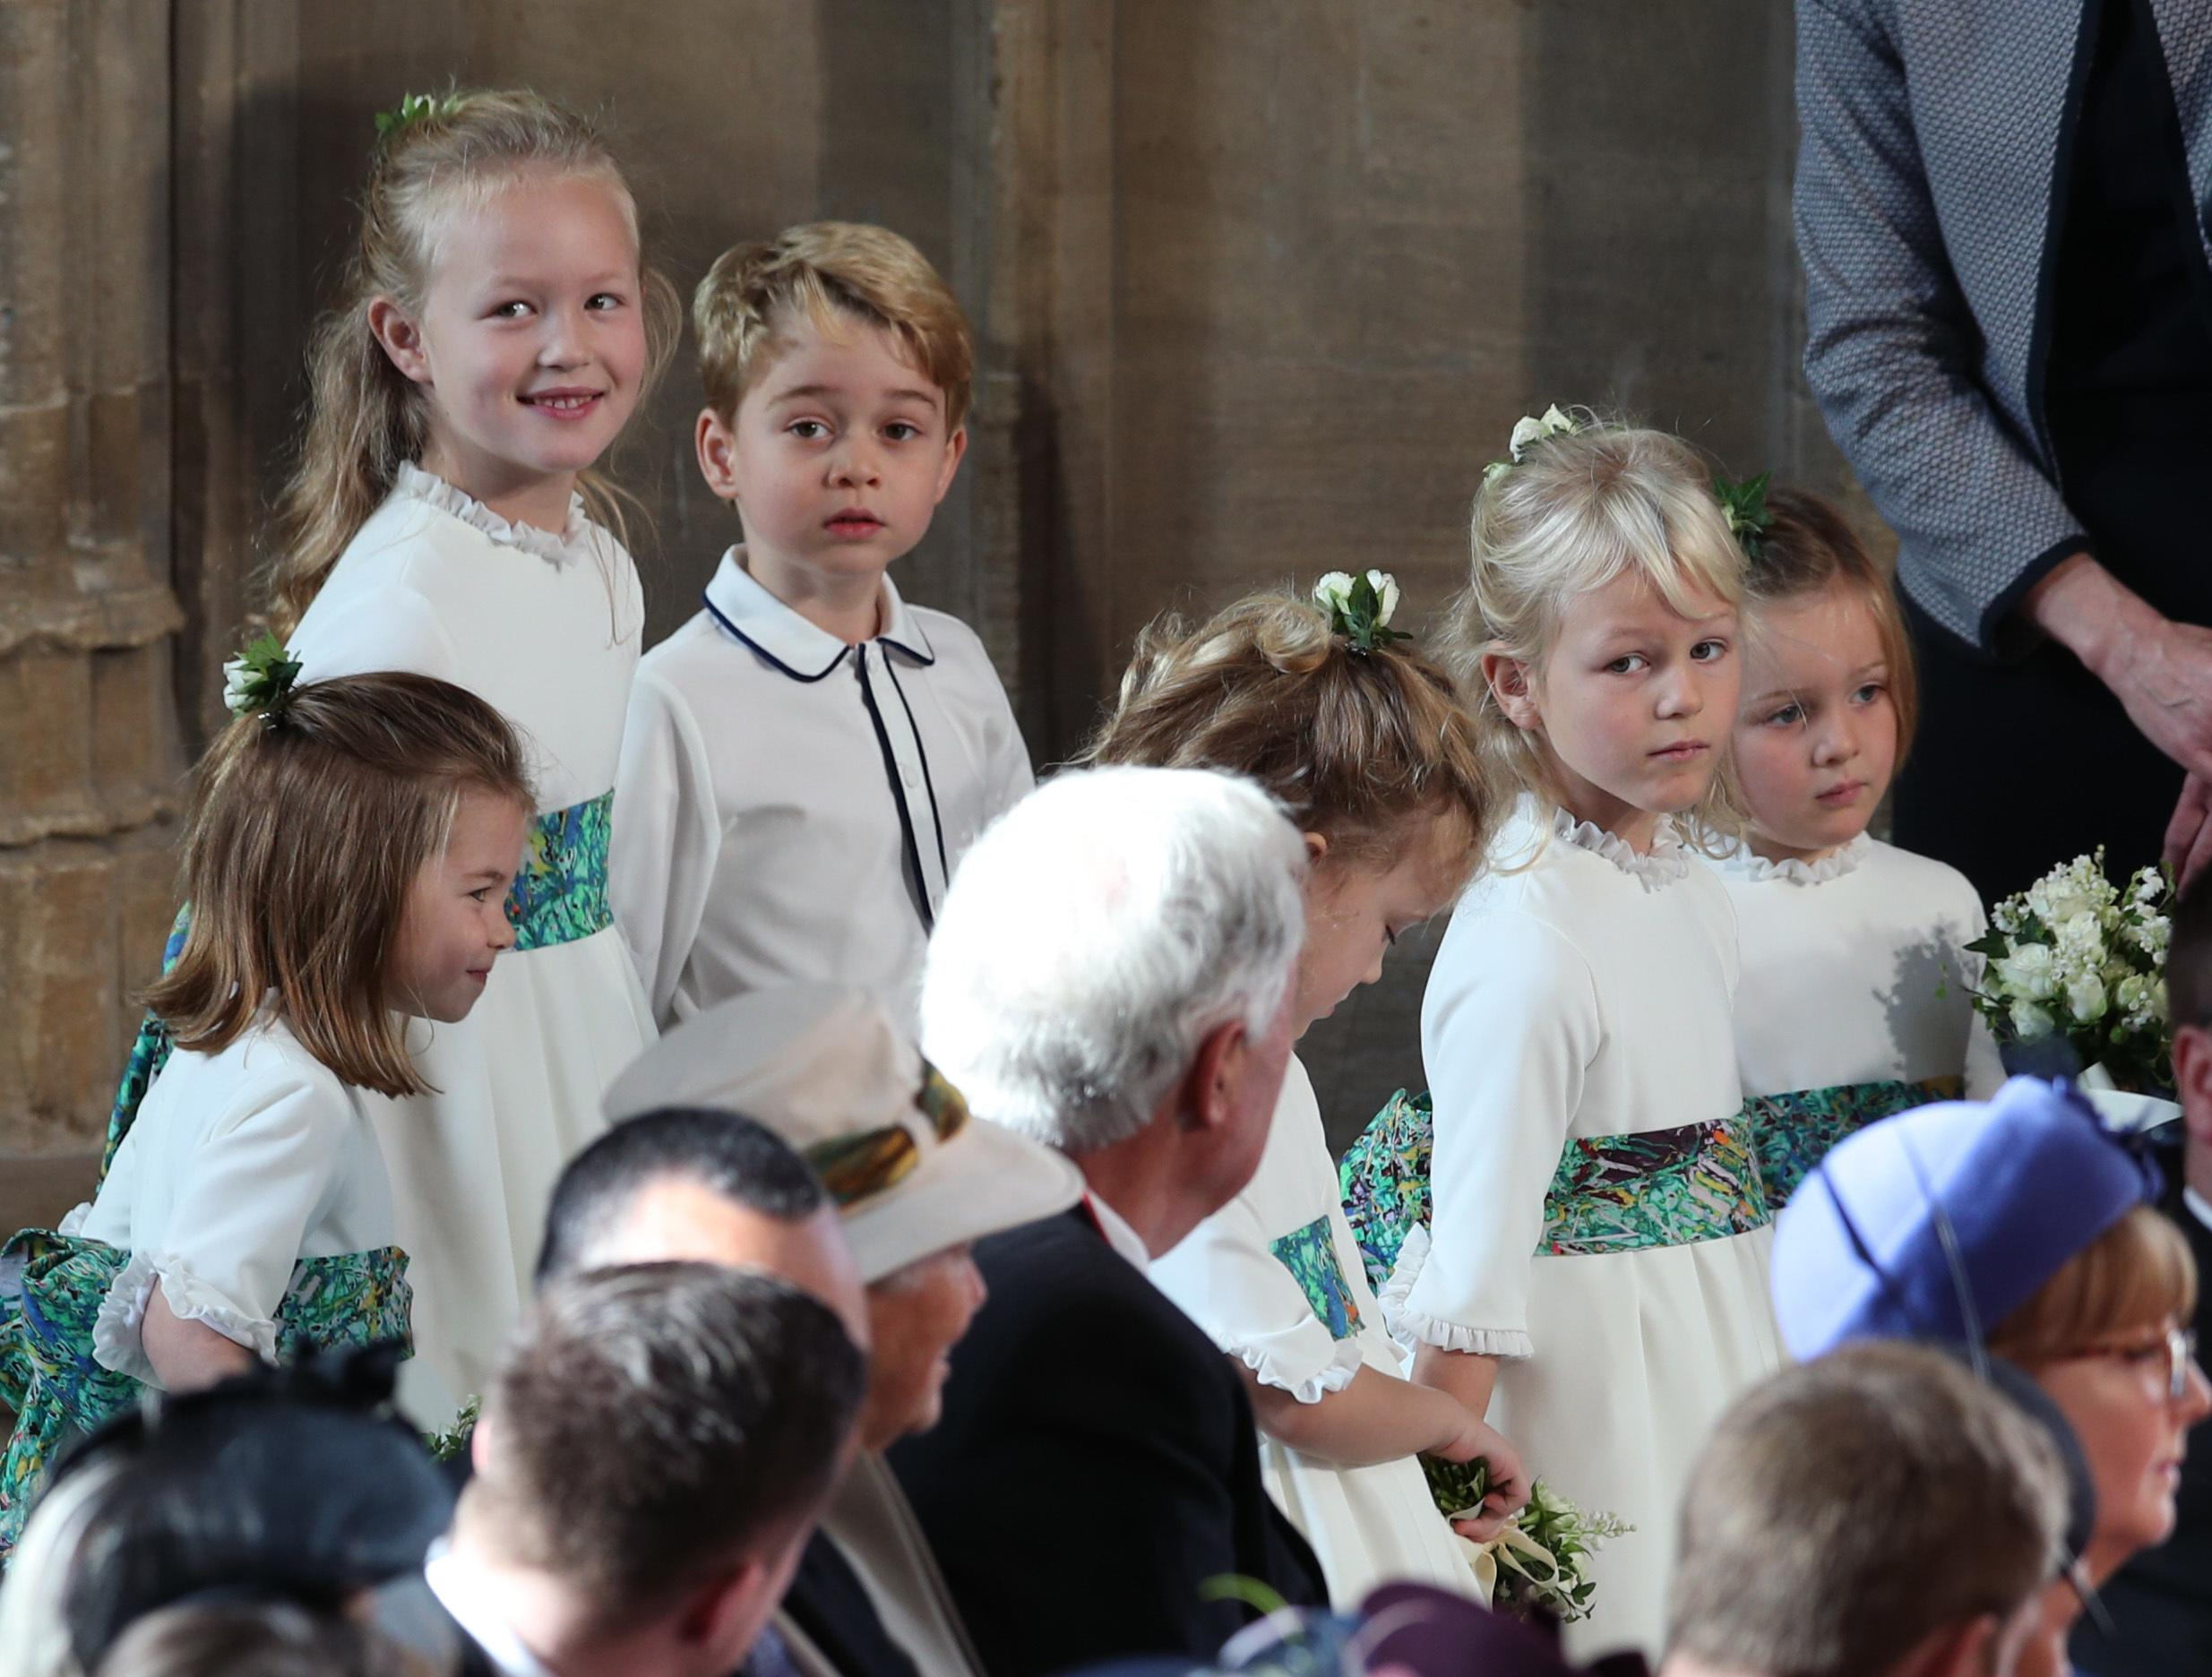 The bridesmaids and page boys, including Savannah Phillips (top), Prince George and Princess Charlotte (bottom left), arrive for the wedding of Princess Eugenie to Jack Brooksbank at St George's Chapel in Windsor Castle. PRESS ASSOCIATION Photo. Picture date: Friday October 12, 2018. Photo credit should read: Yui Mok/PA Wire